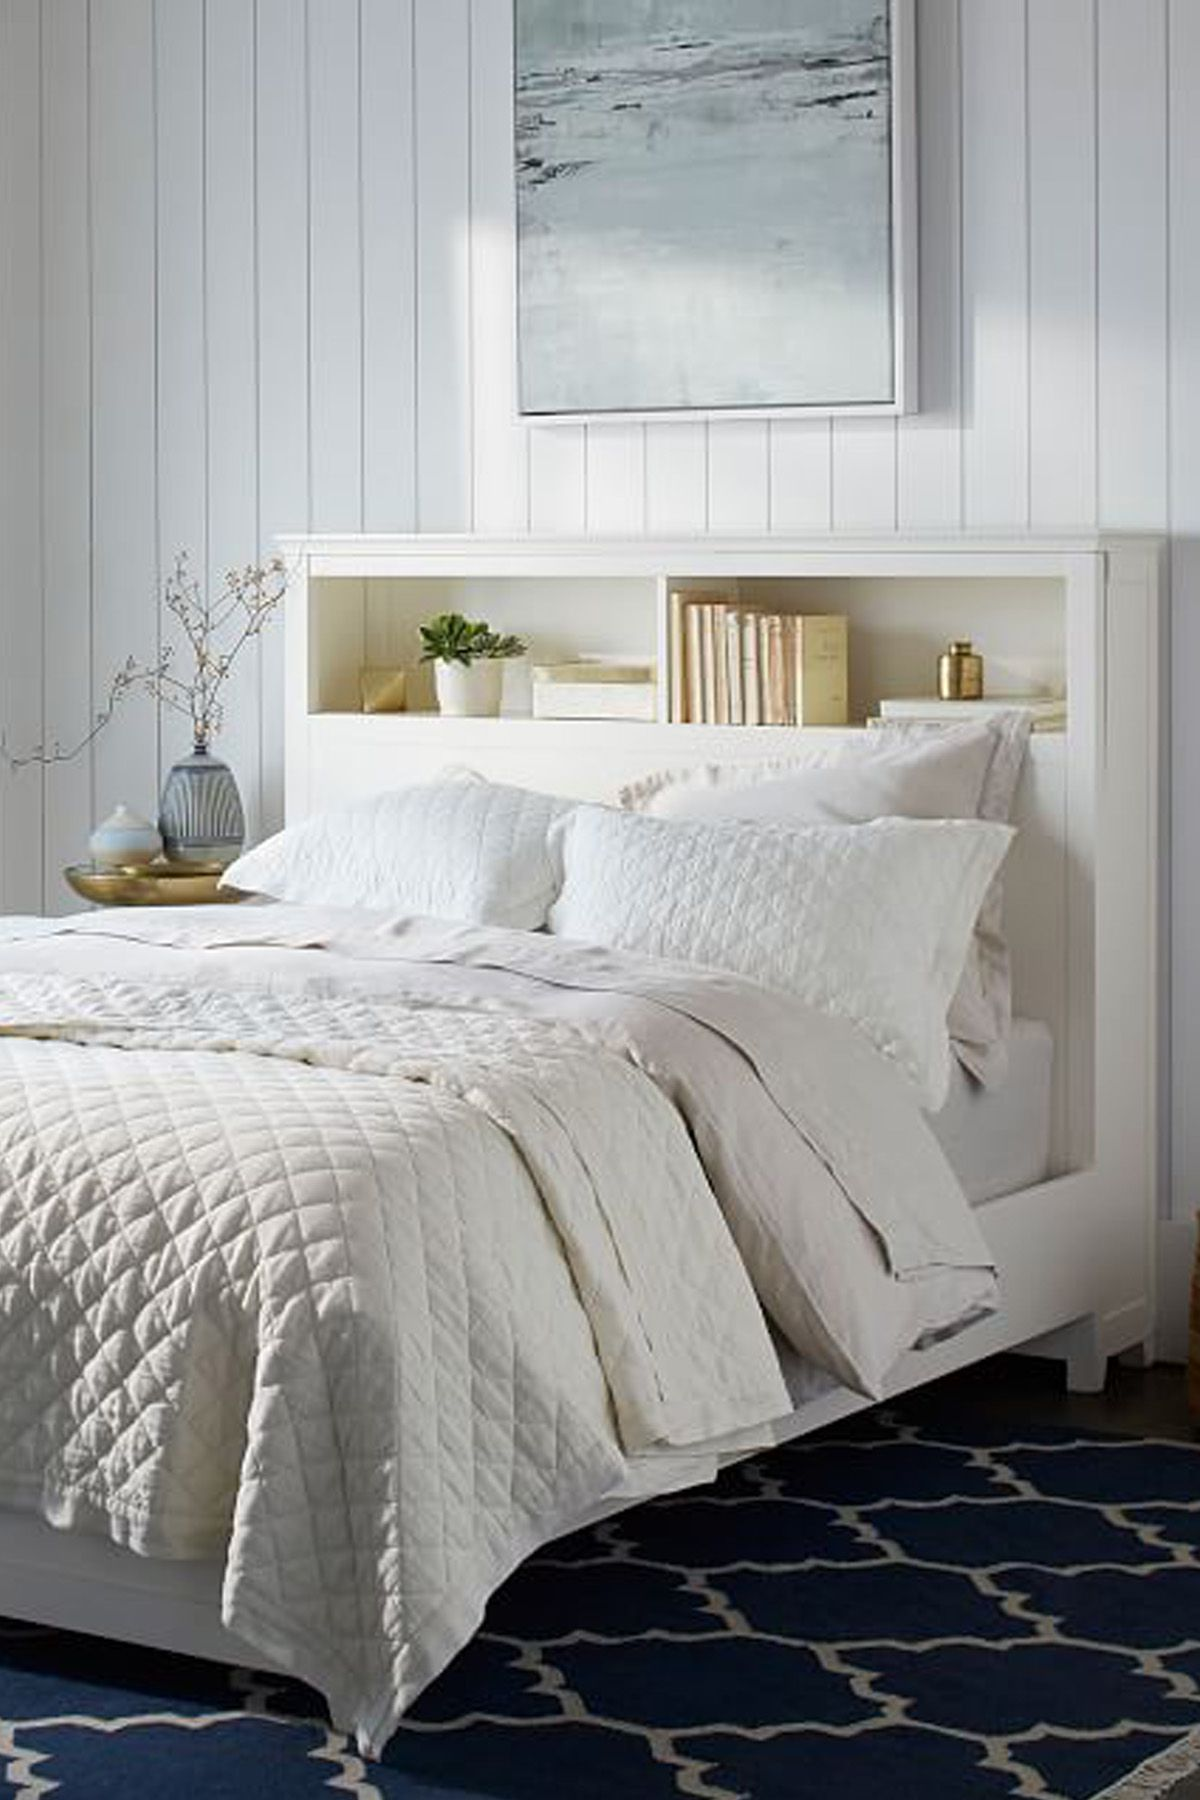 20 Best Headboard Ideas - Unique Designs for Bed Headboards